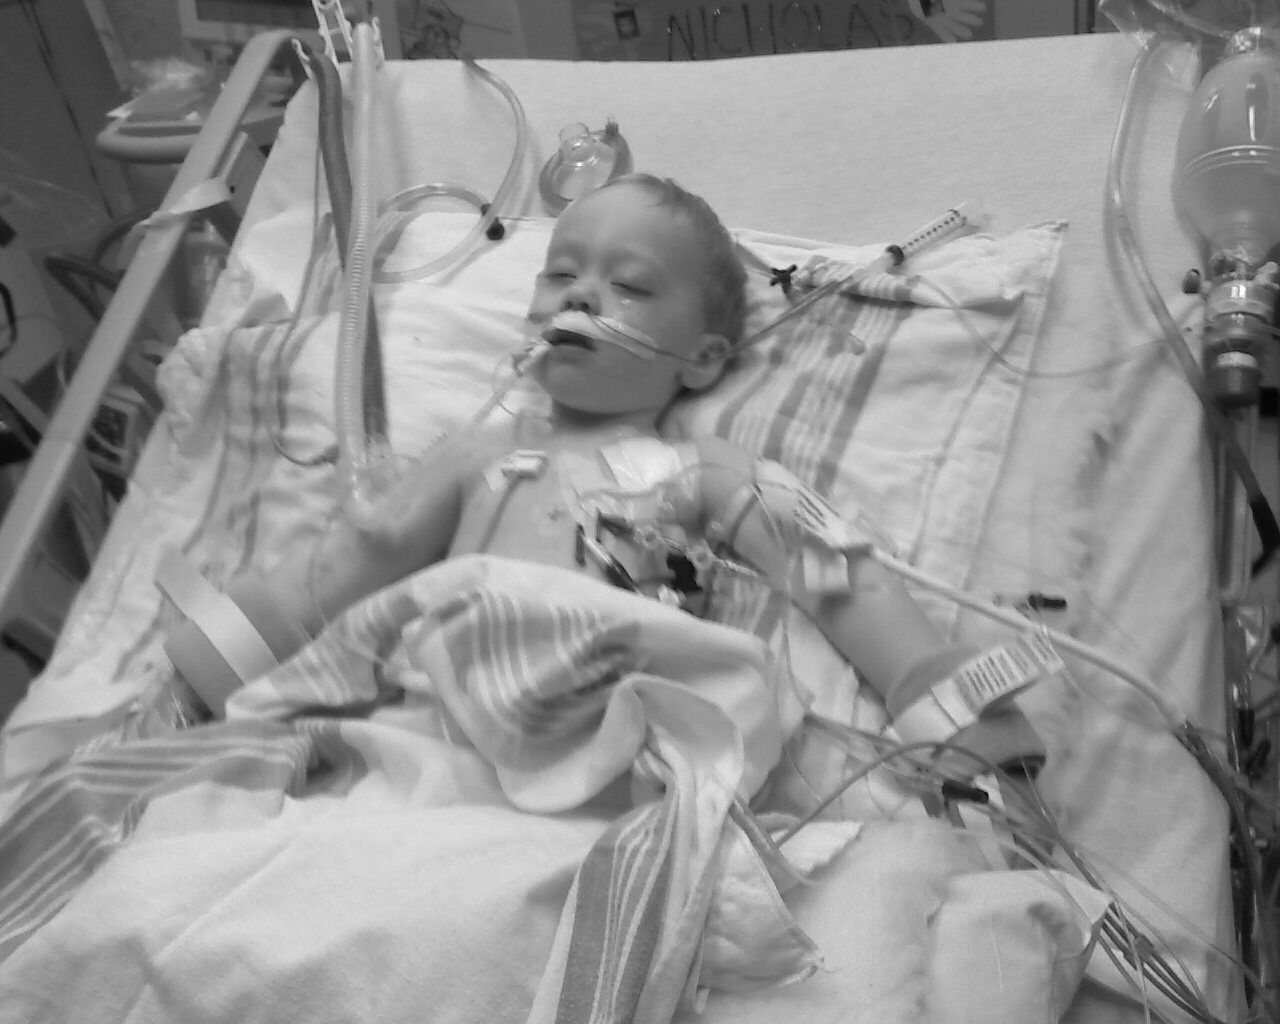 Stage 4 neuroblastoma cancer at 23 months., this little boy is now 4 1/2 yrs. old!  However, do we ever want to see these kids go through this...NO, help raise awareness for more research funds...go to cure search.org